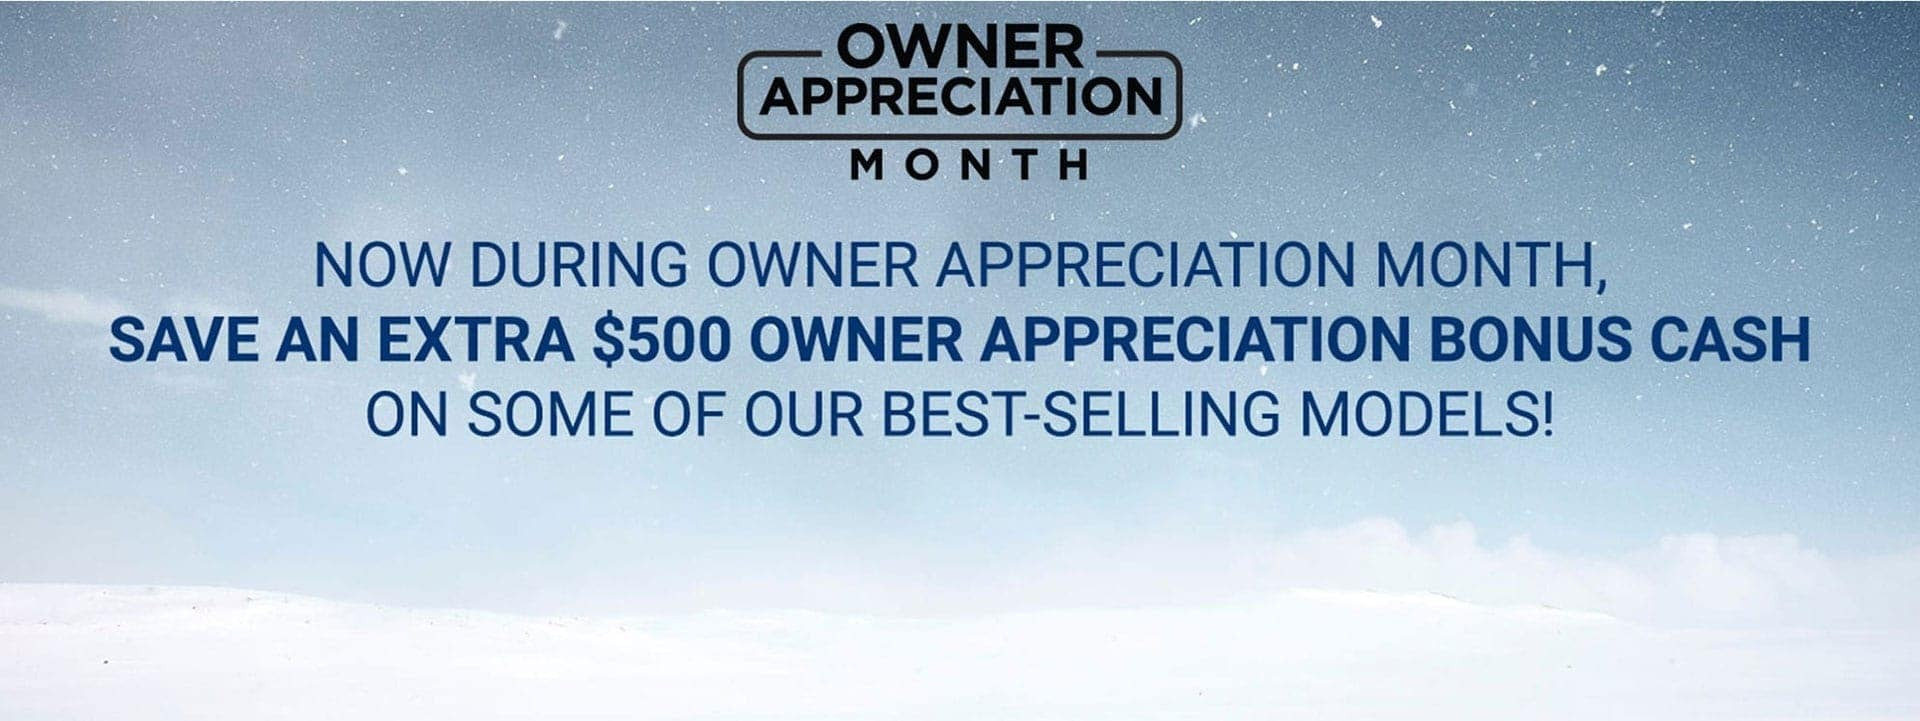 Owner Appreciation $500 Bonus